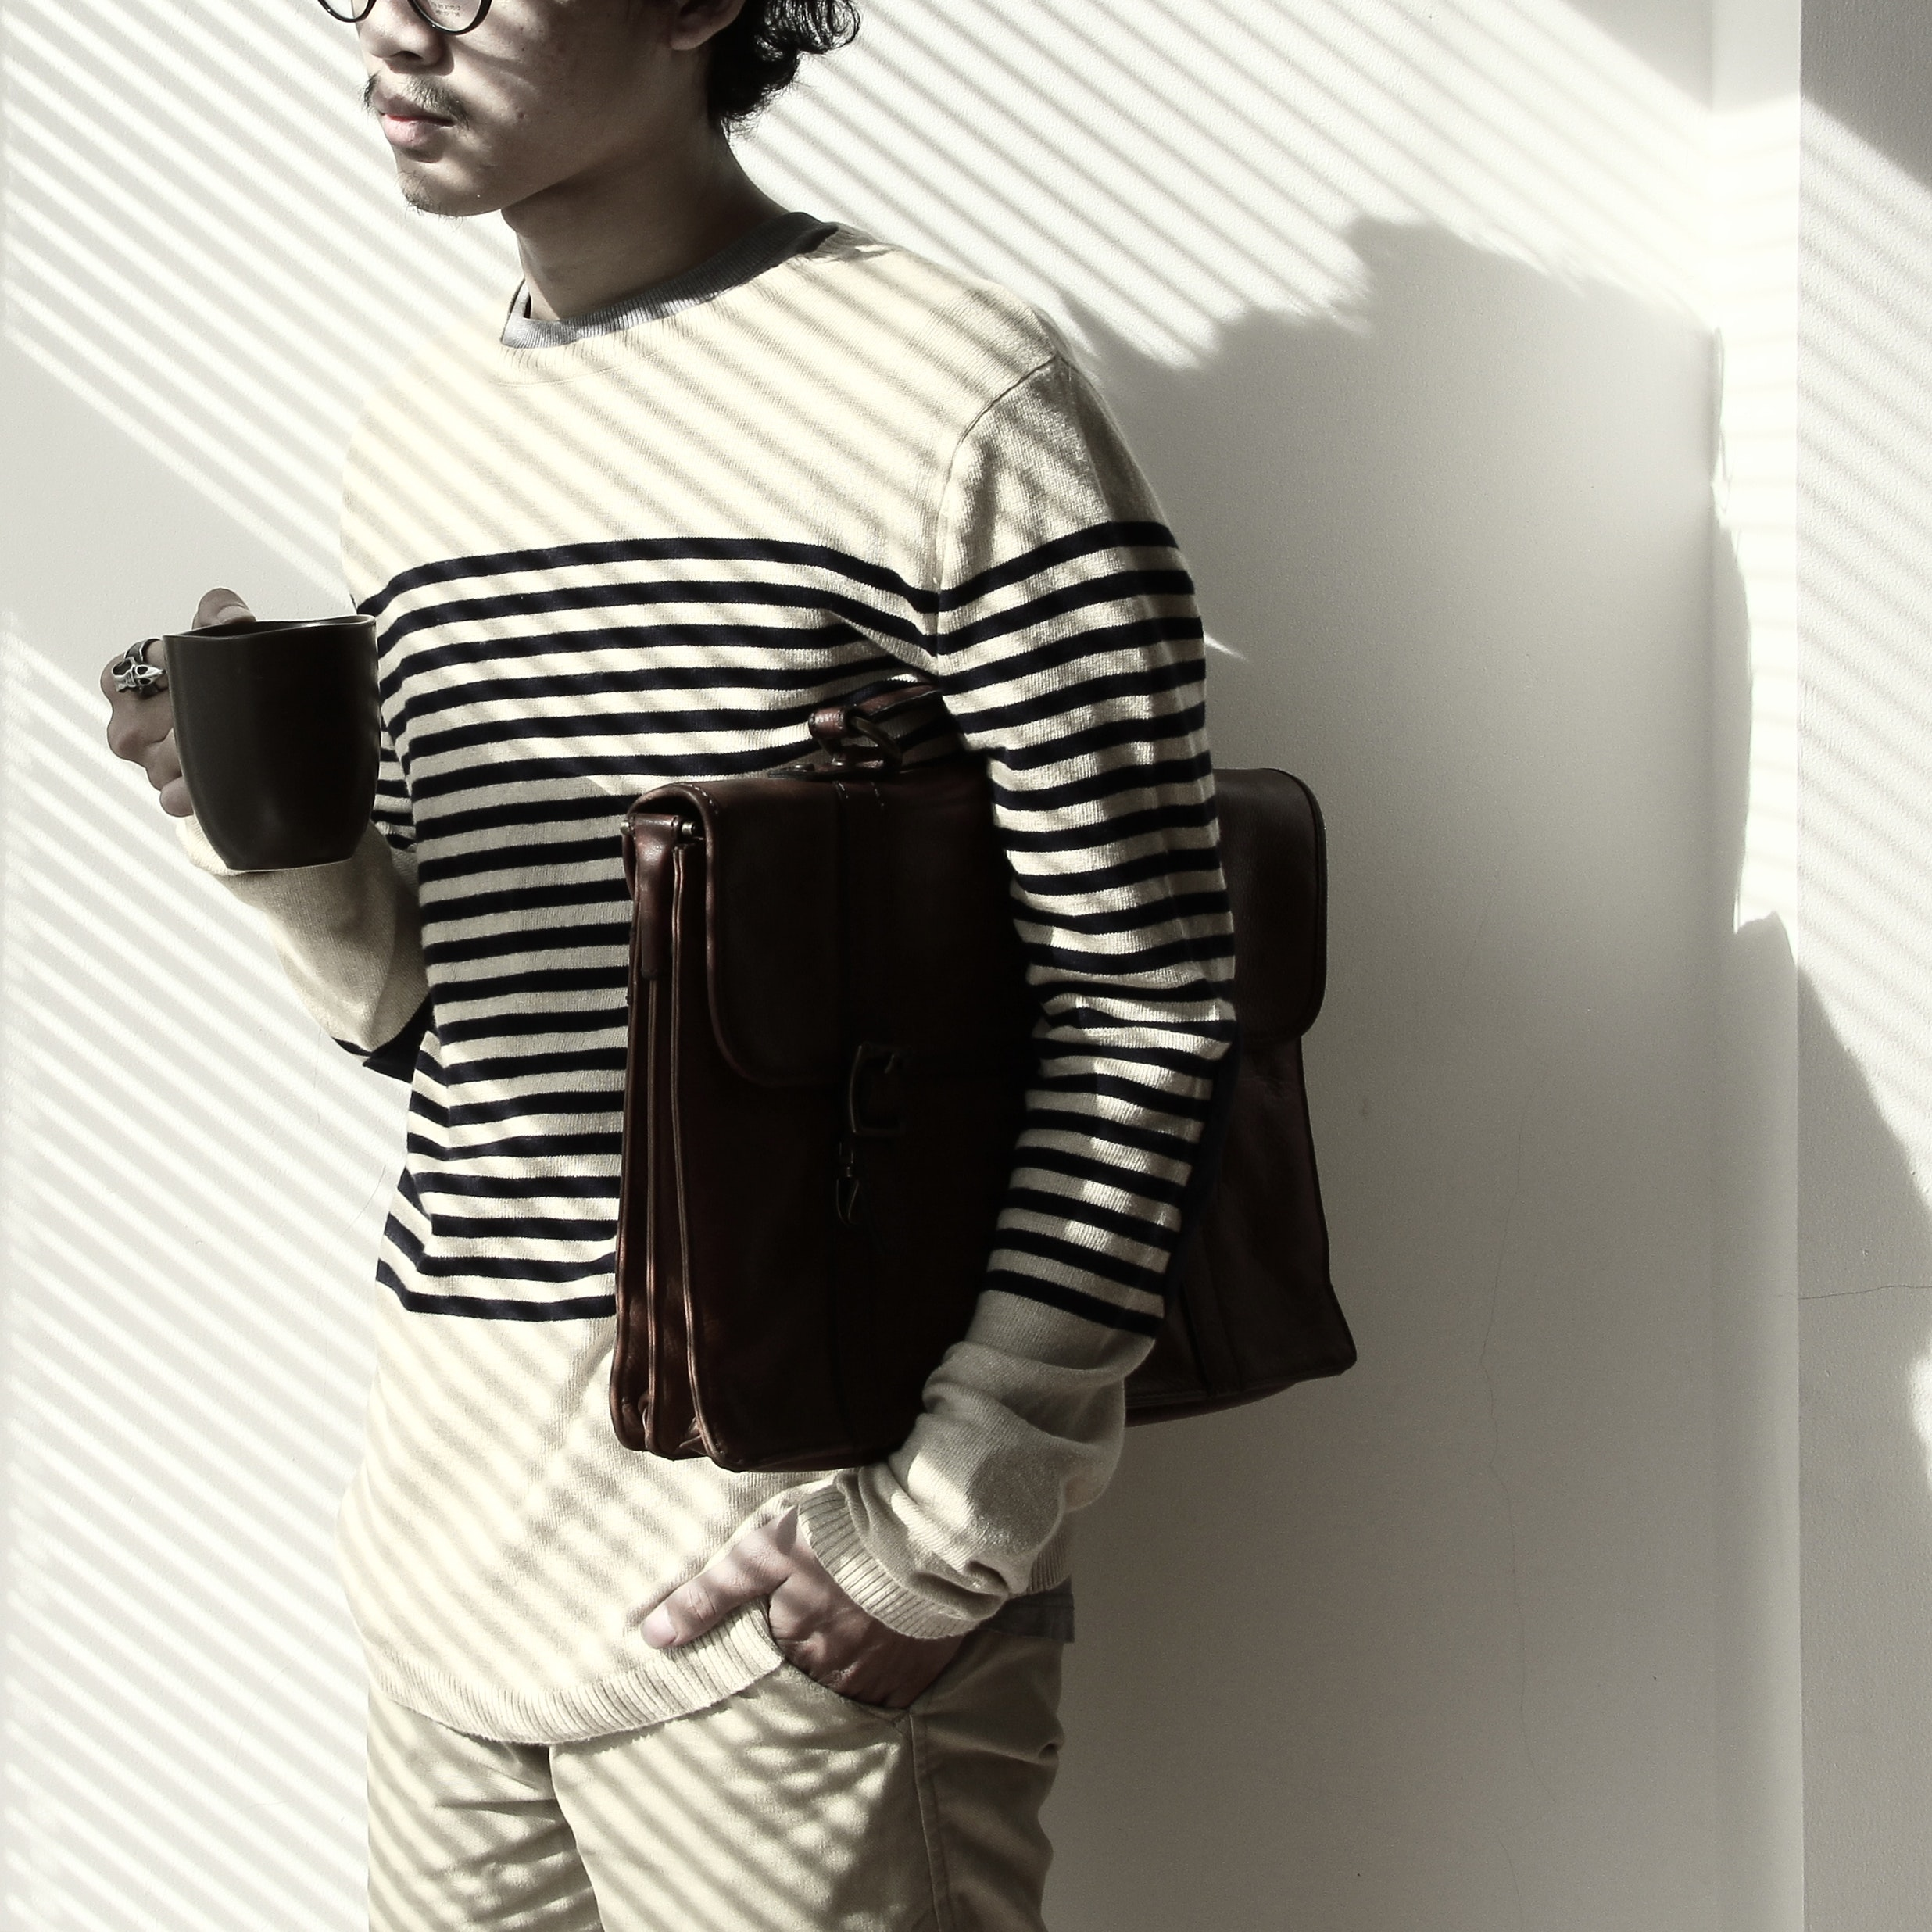 Standing brunet person waring eyeglasses and white black stripe sweater holding mug and briefcase photo